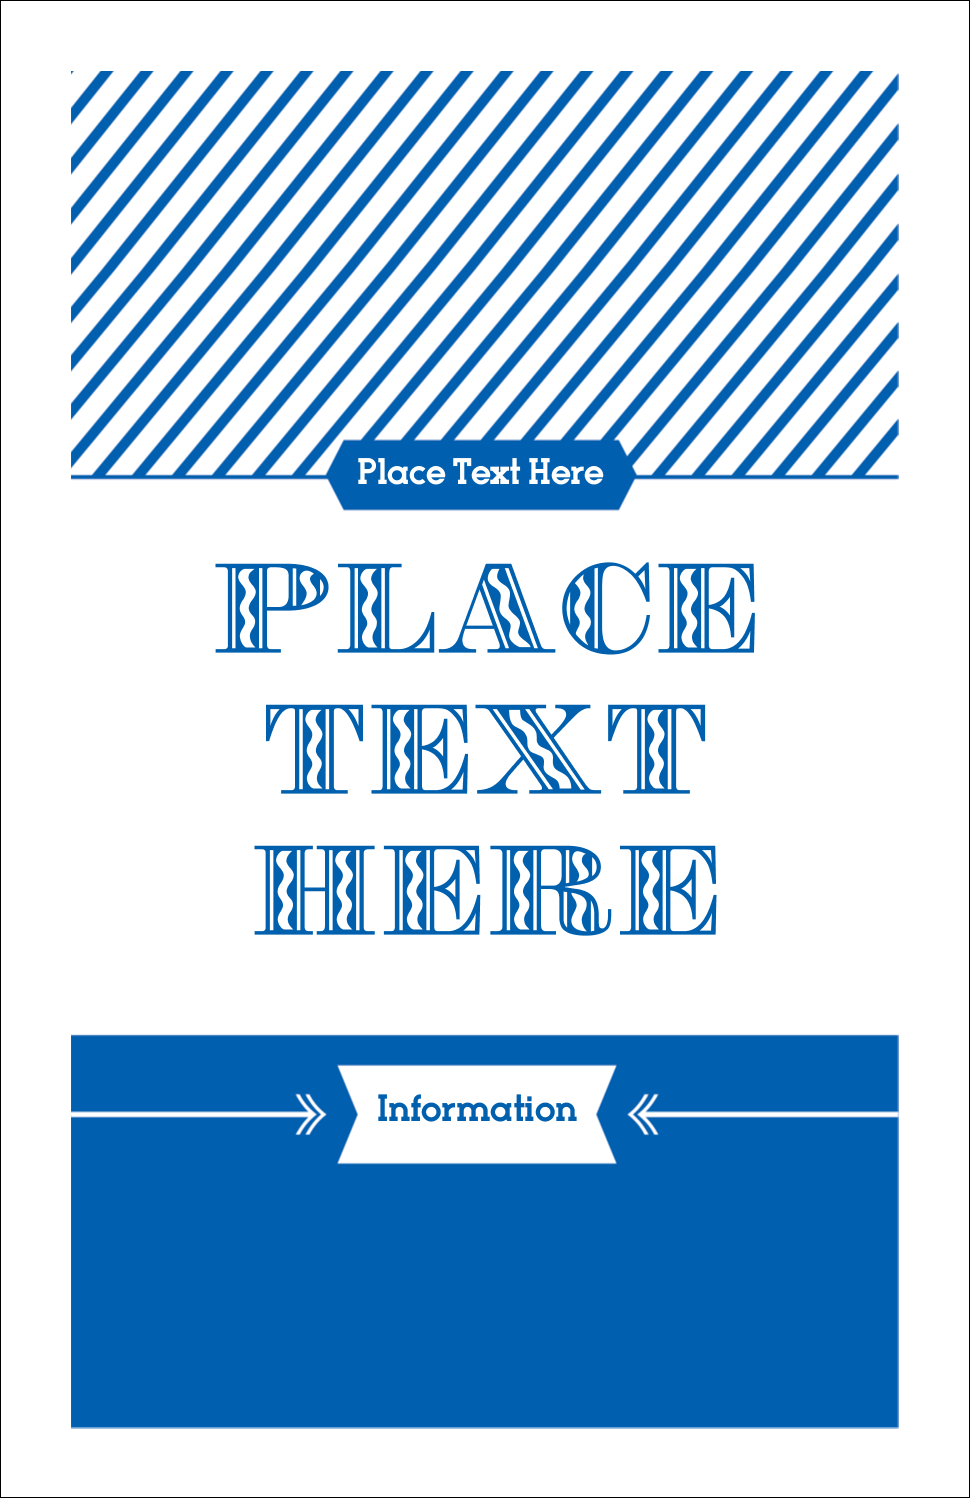 Give the impression of classic technique and style with the Letterpress template.